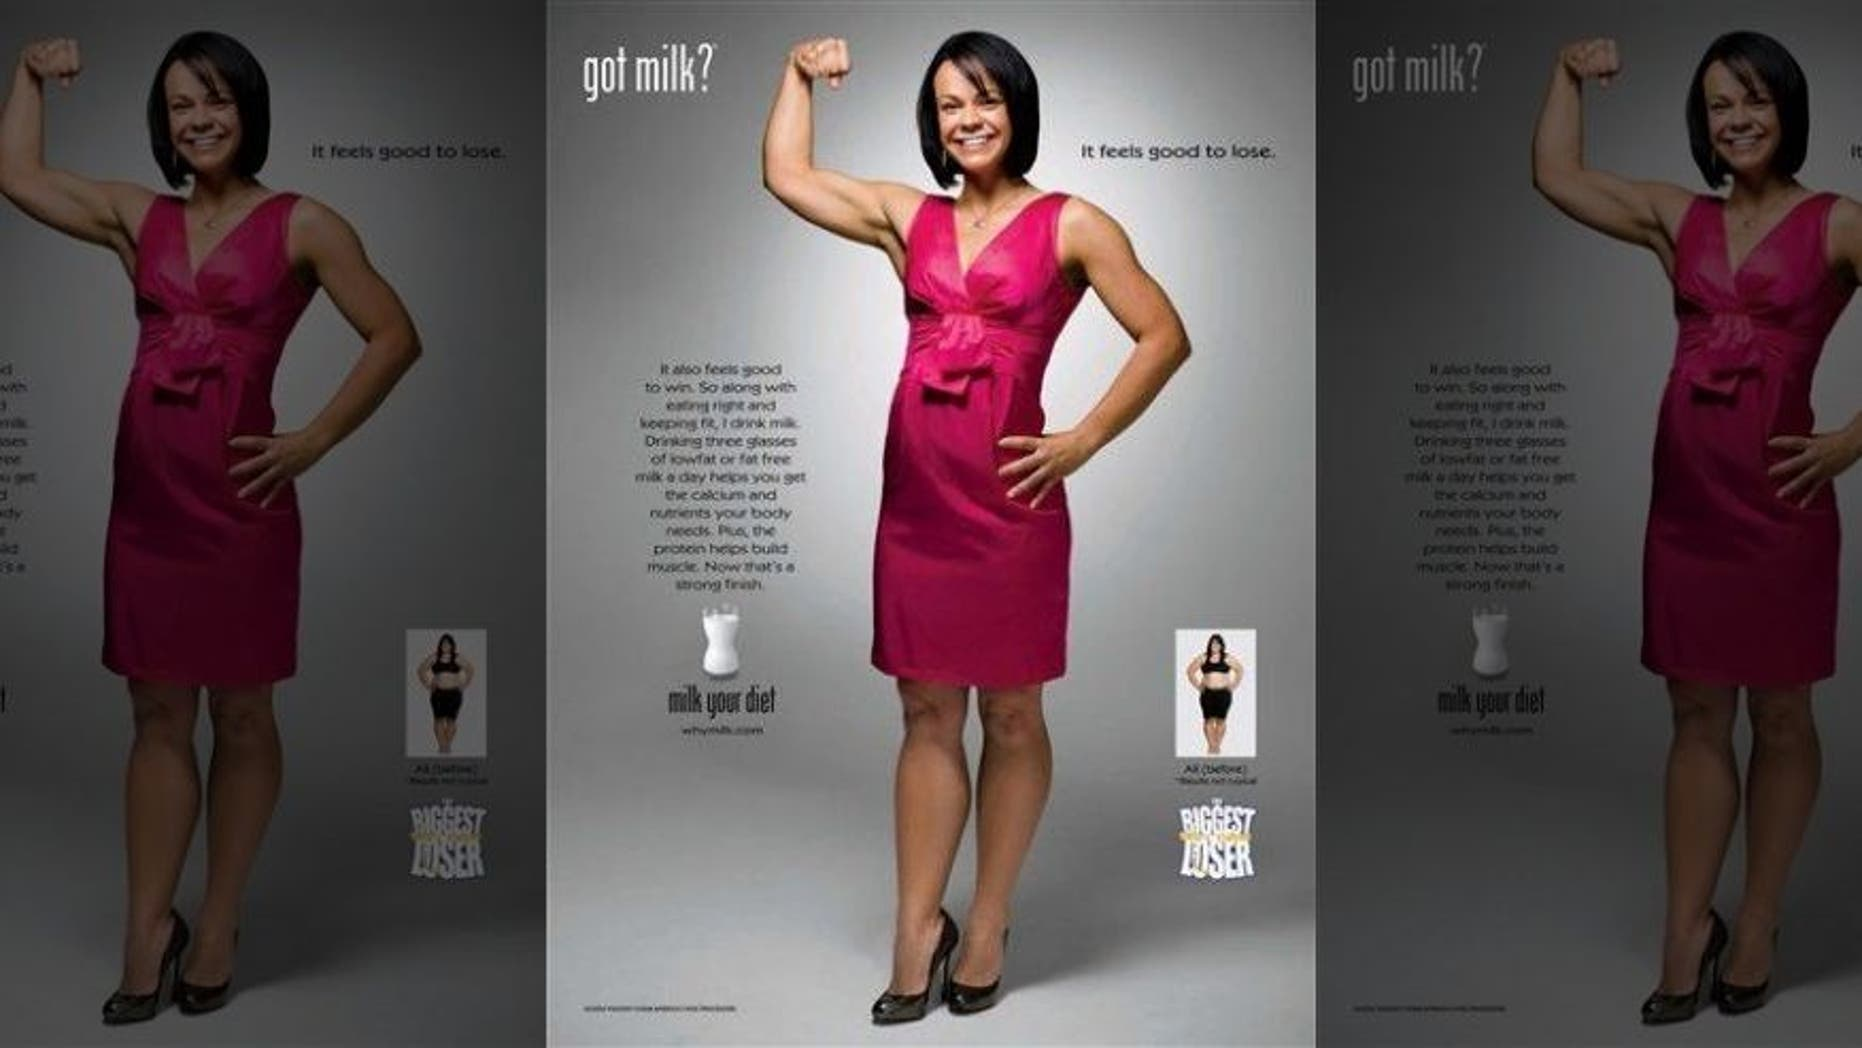 """In this 2008 image released by the Milk Processor Education Program, Ali Vincent is shown in the latest """"got milk"""" print advertisement. (AP)"""